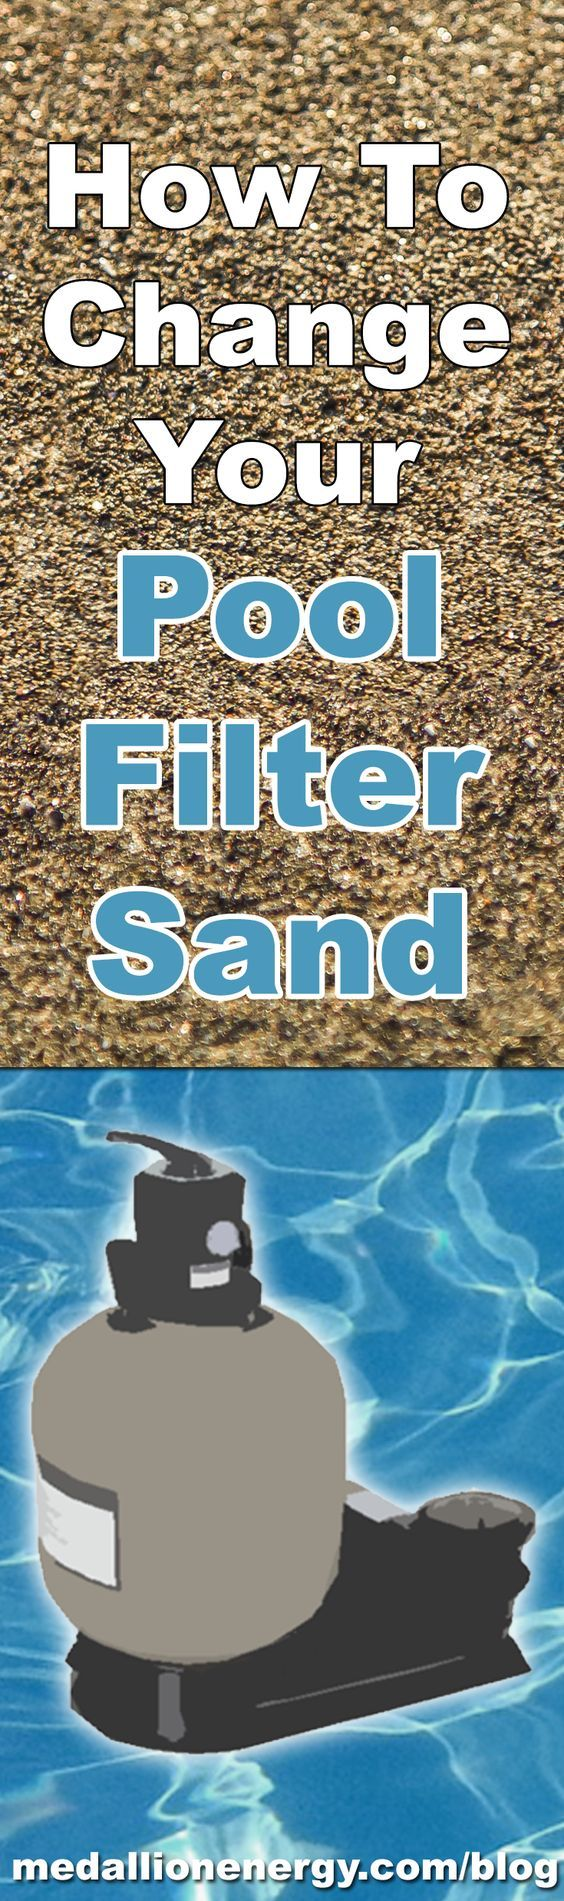 Trying to figure out when to change your pool filter sand? Not sure how to? This guide will help you change pool filter sand like a pro.  Read more: http://www.medallionenergy.com/blog/change-pool-filter-sand/